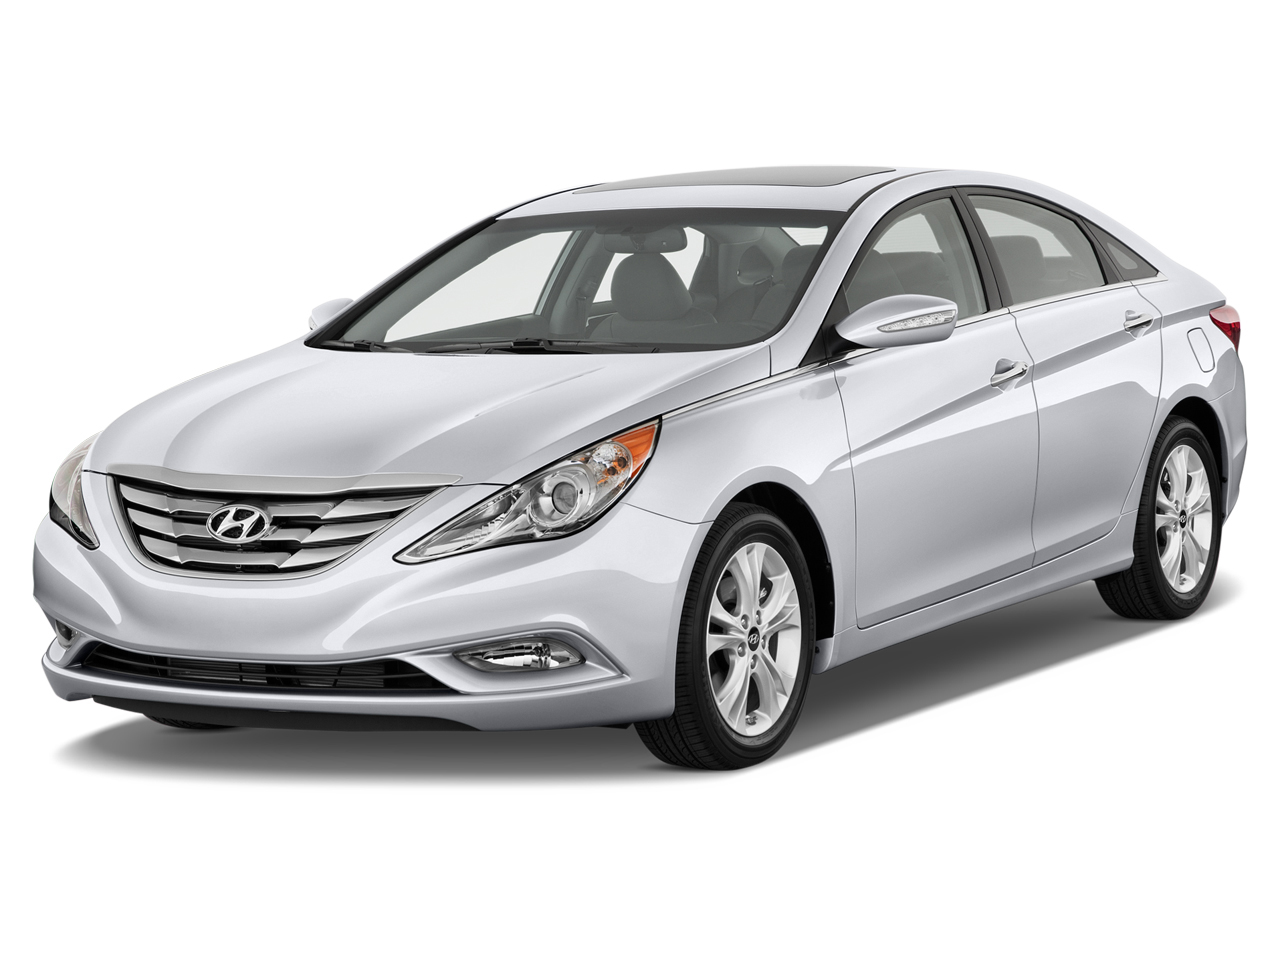 2013 Hyundai Sonata Review Ratings Specs Prices And